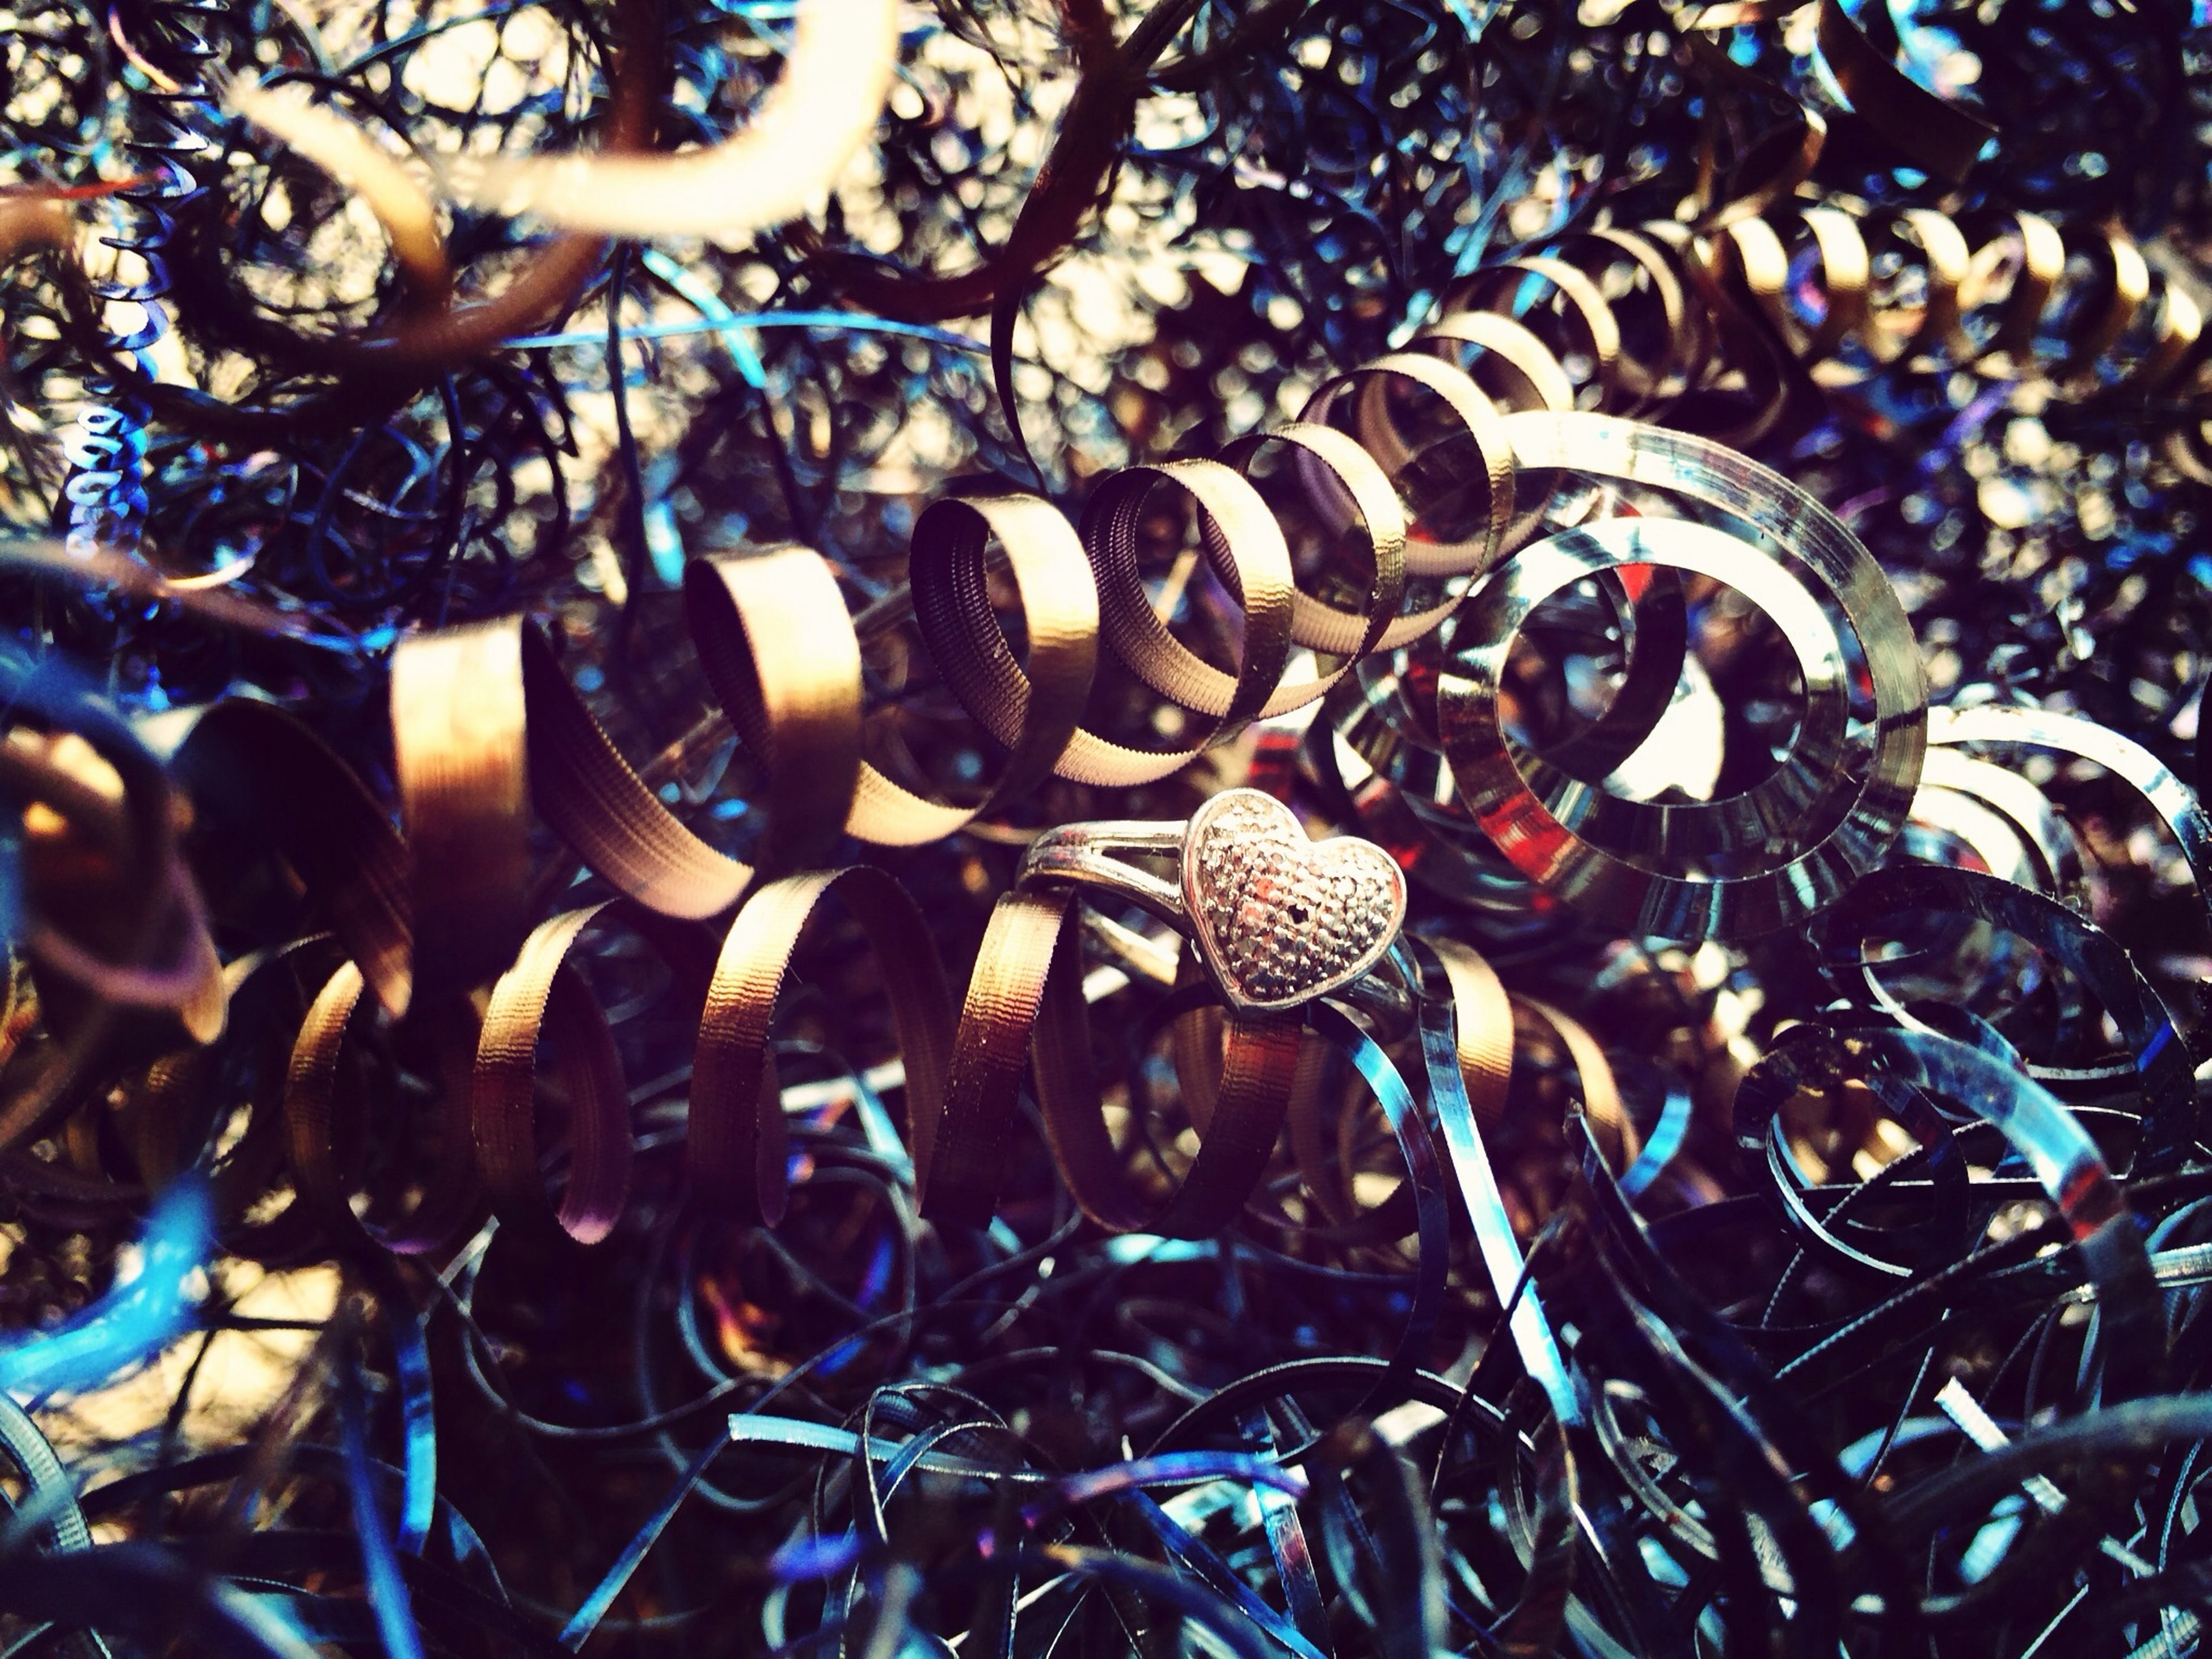 full frame, backgrounds, abundance, large group of objects, close-up, metal, pattern, metallic, day, no people, outdoors, selective focus, detail, nature, repetition, focus on foreground, sunlight, textured, complexity, high angle view